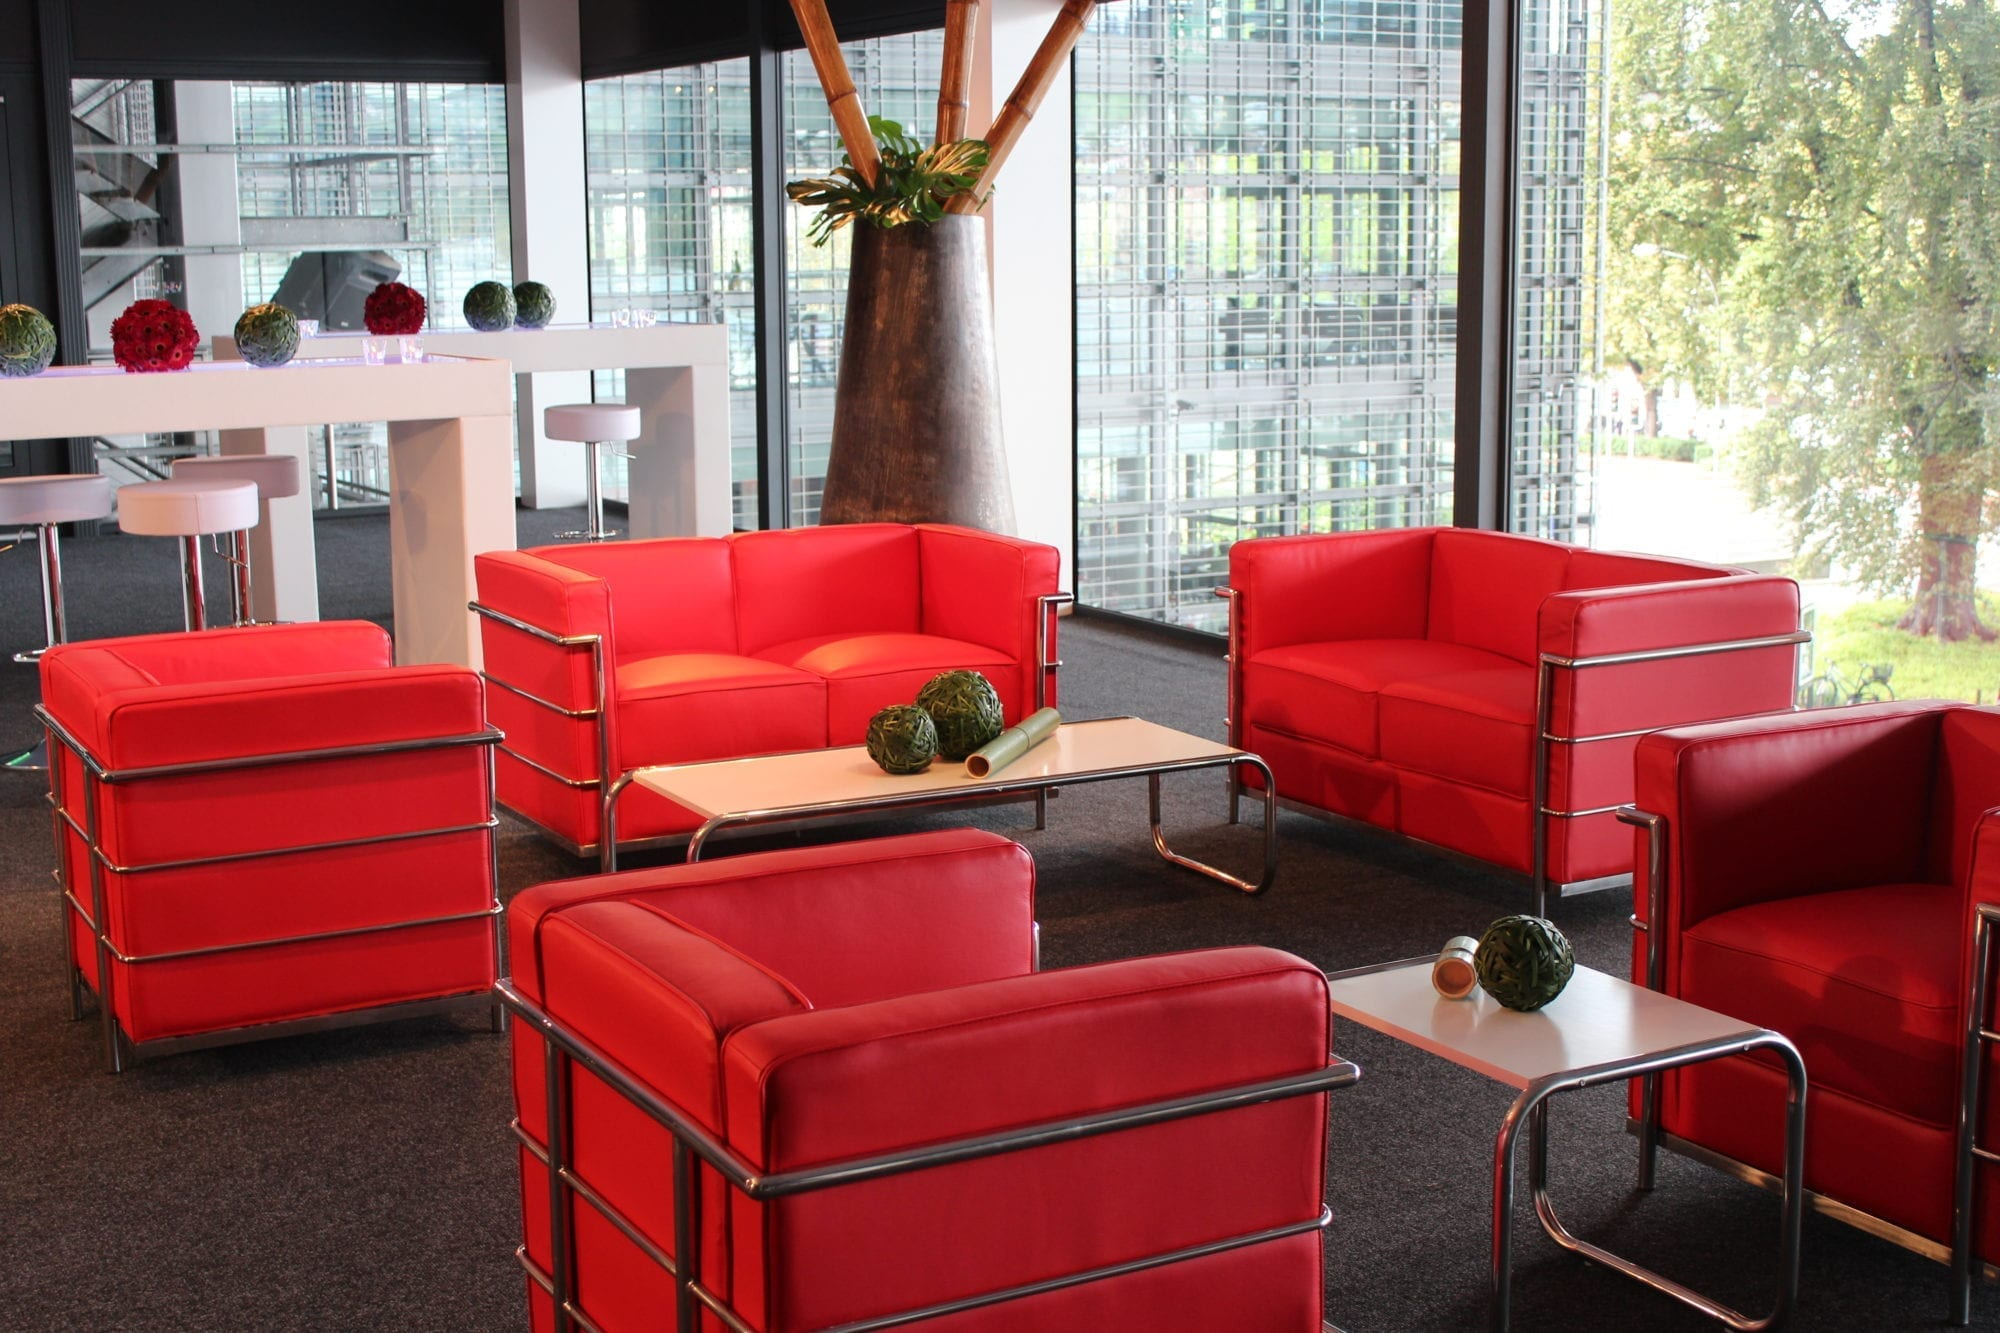 red 2er sofa mieten rent-a-lounge 1